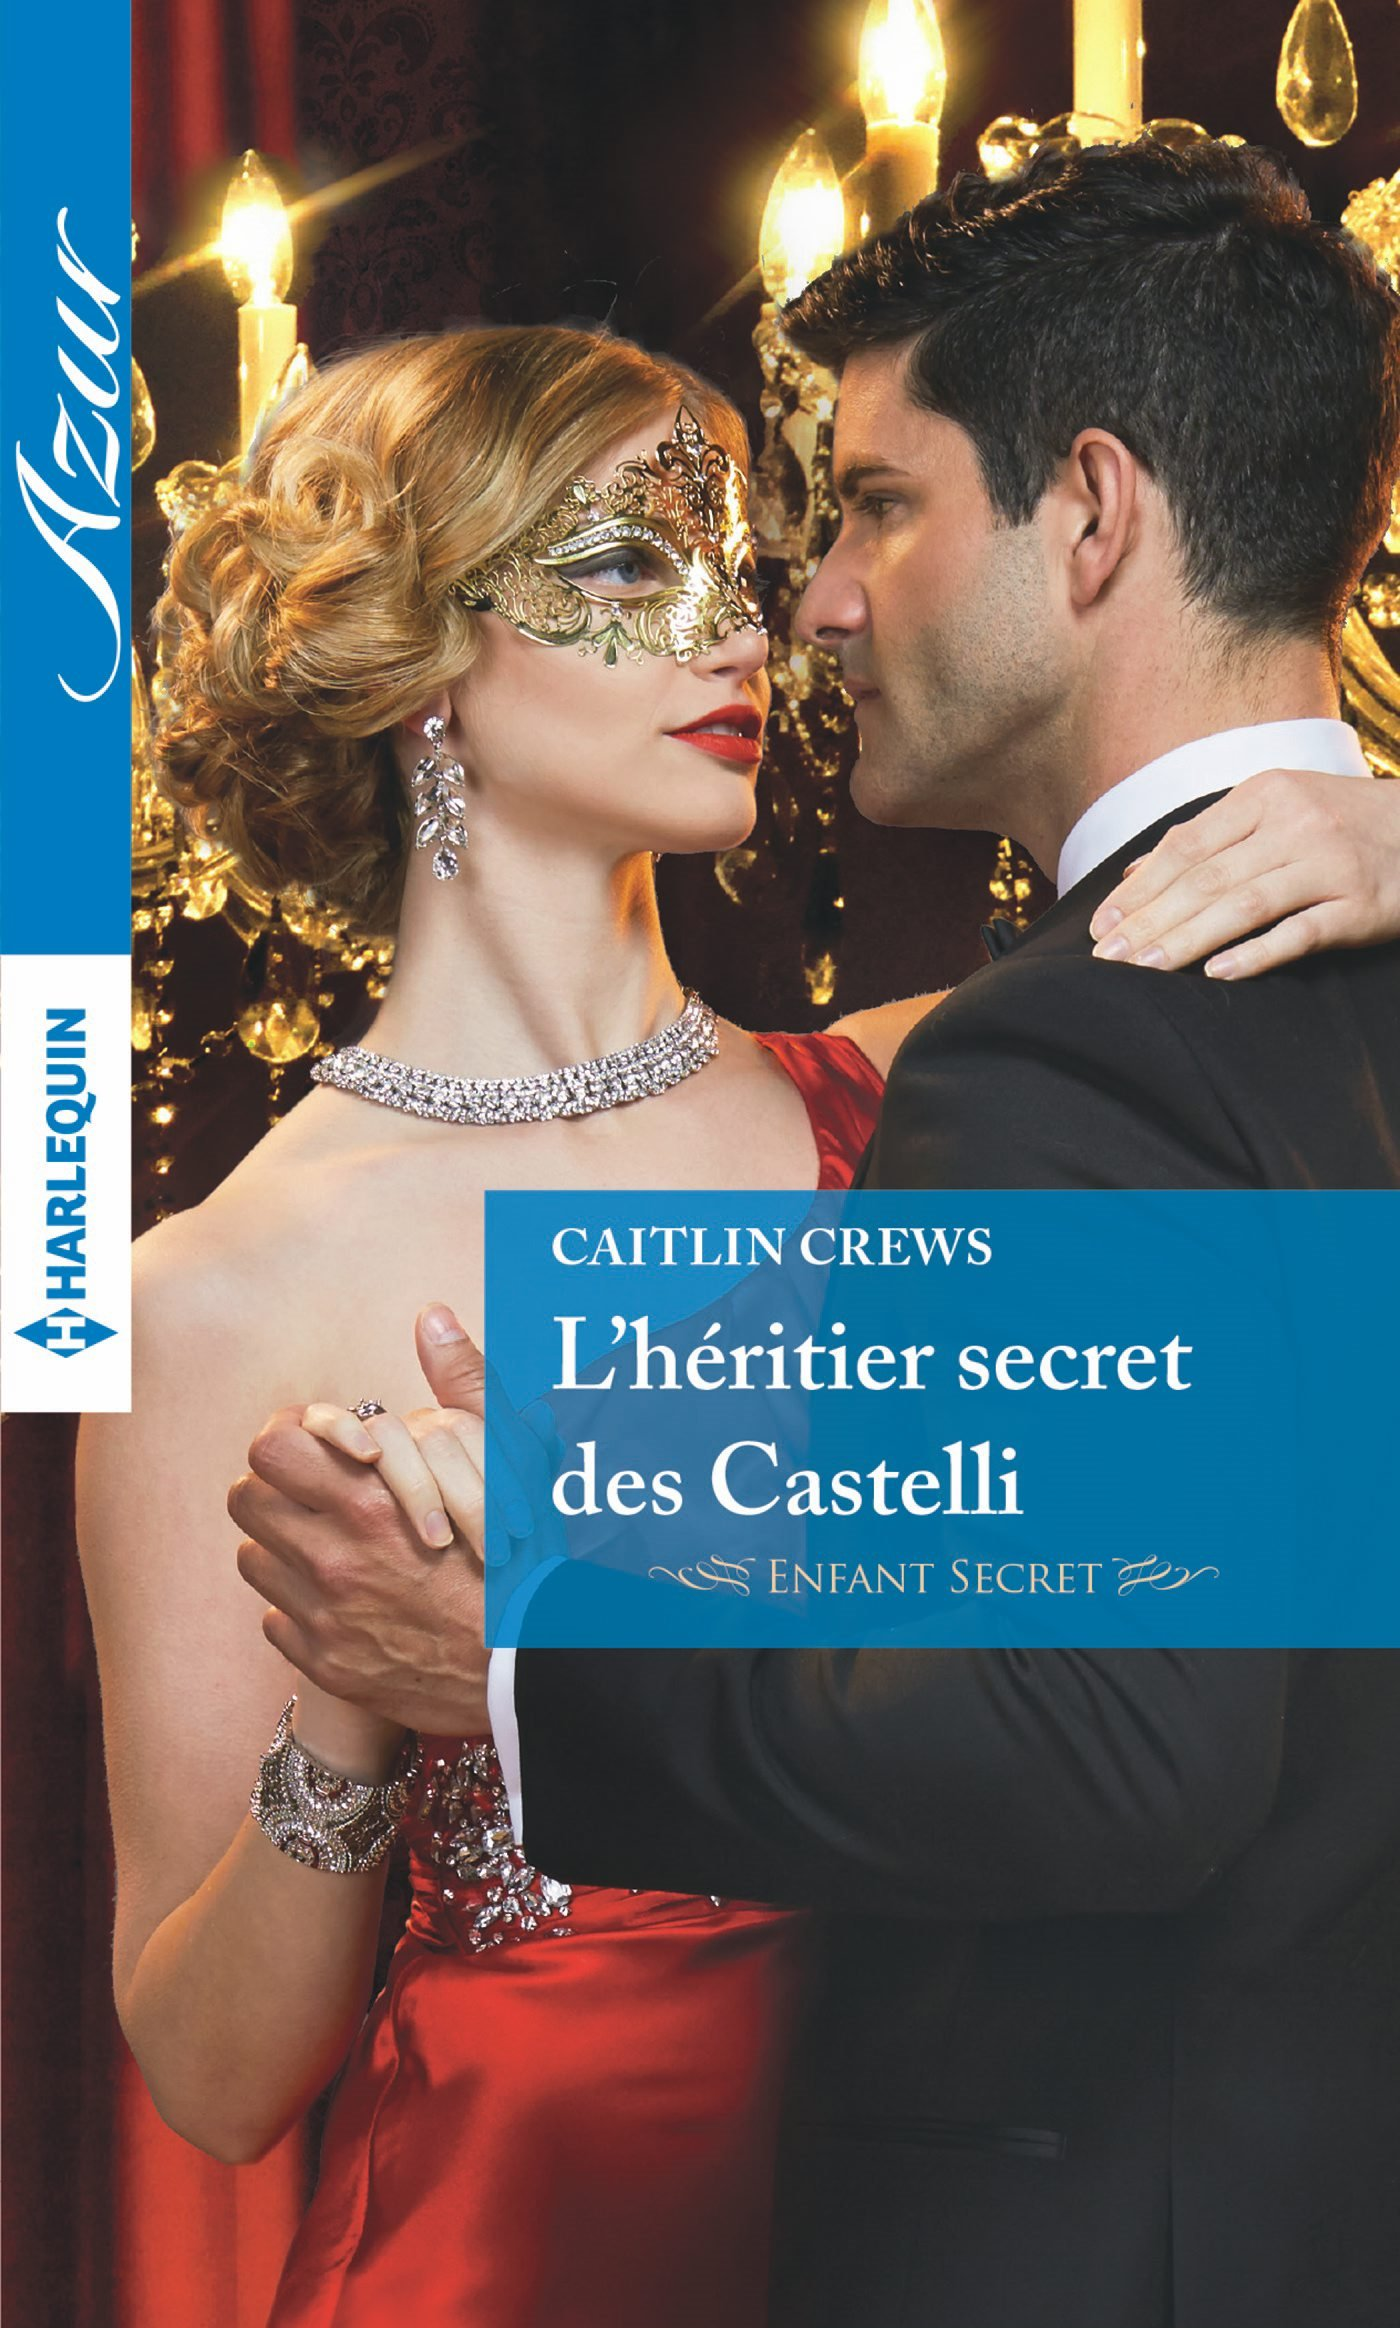 Couverture : Caitlin Crews, L'héritier secret des Castelli, Harlequin